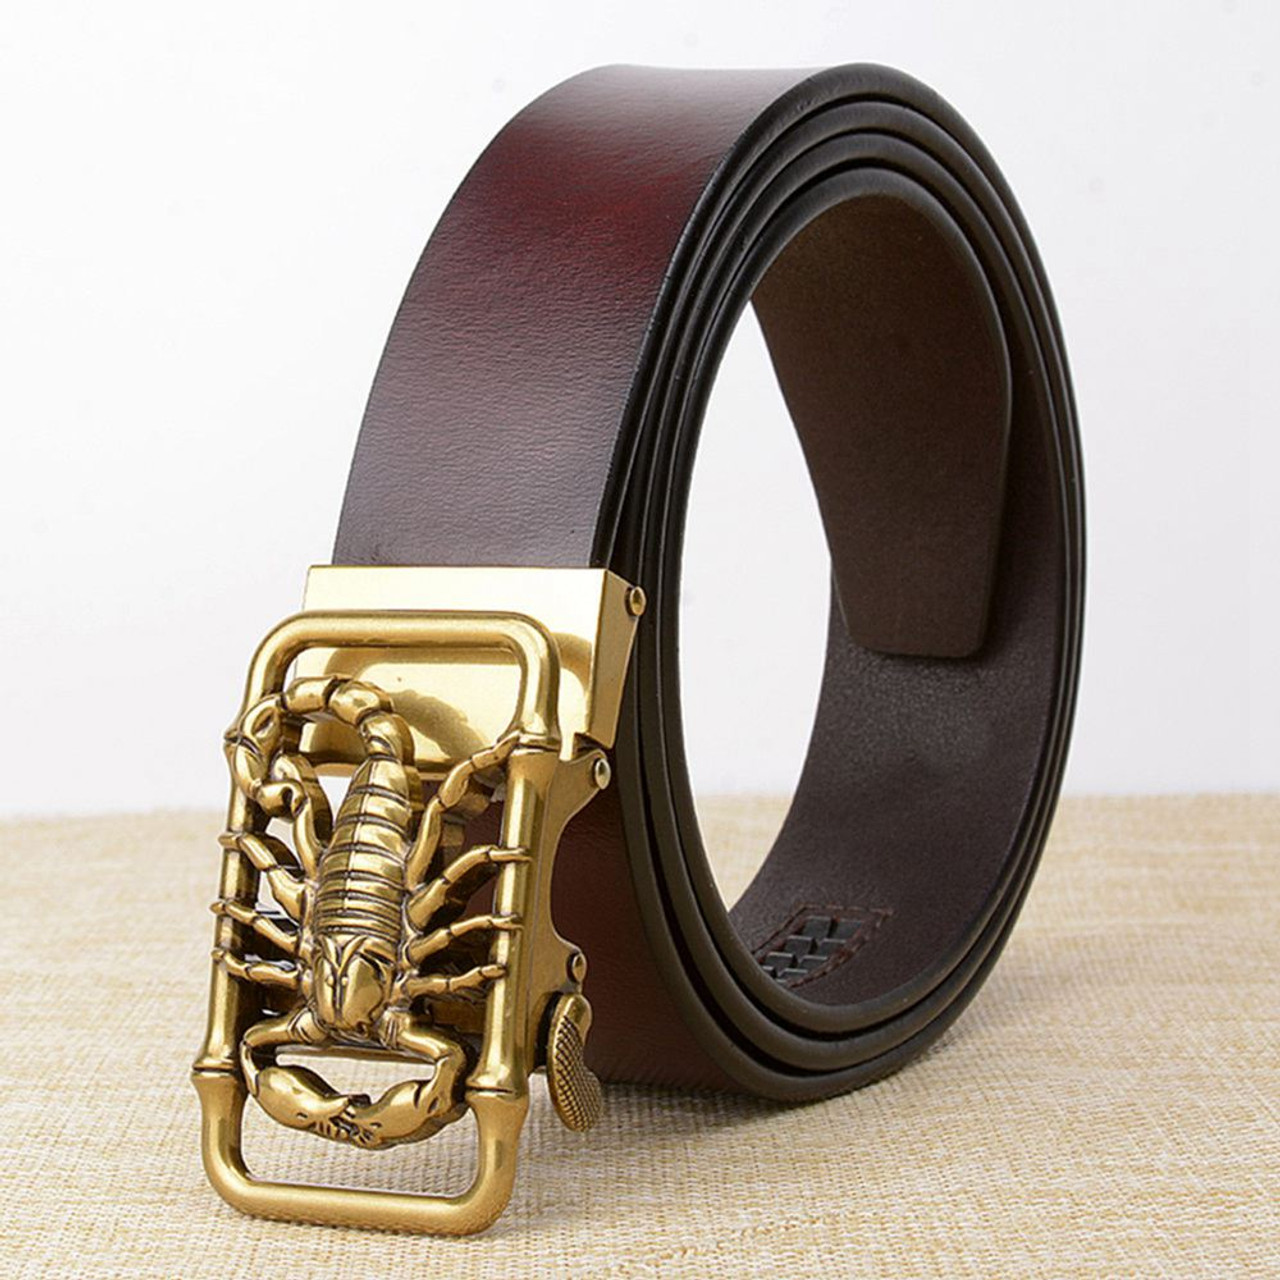 New Casual Men/'s Genuine Leather Whole Cowhide Waistband Waist Strap Jeans Belts